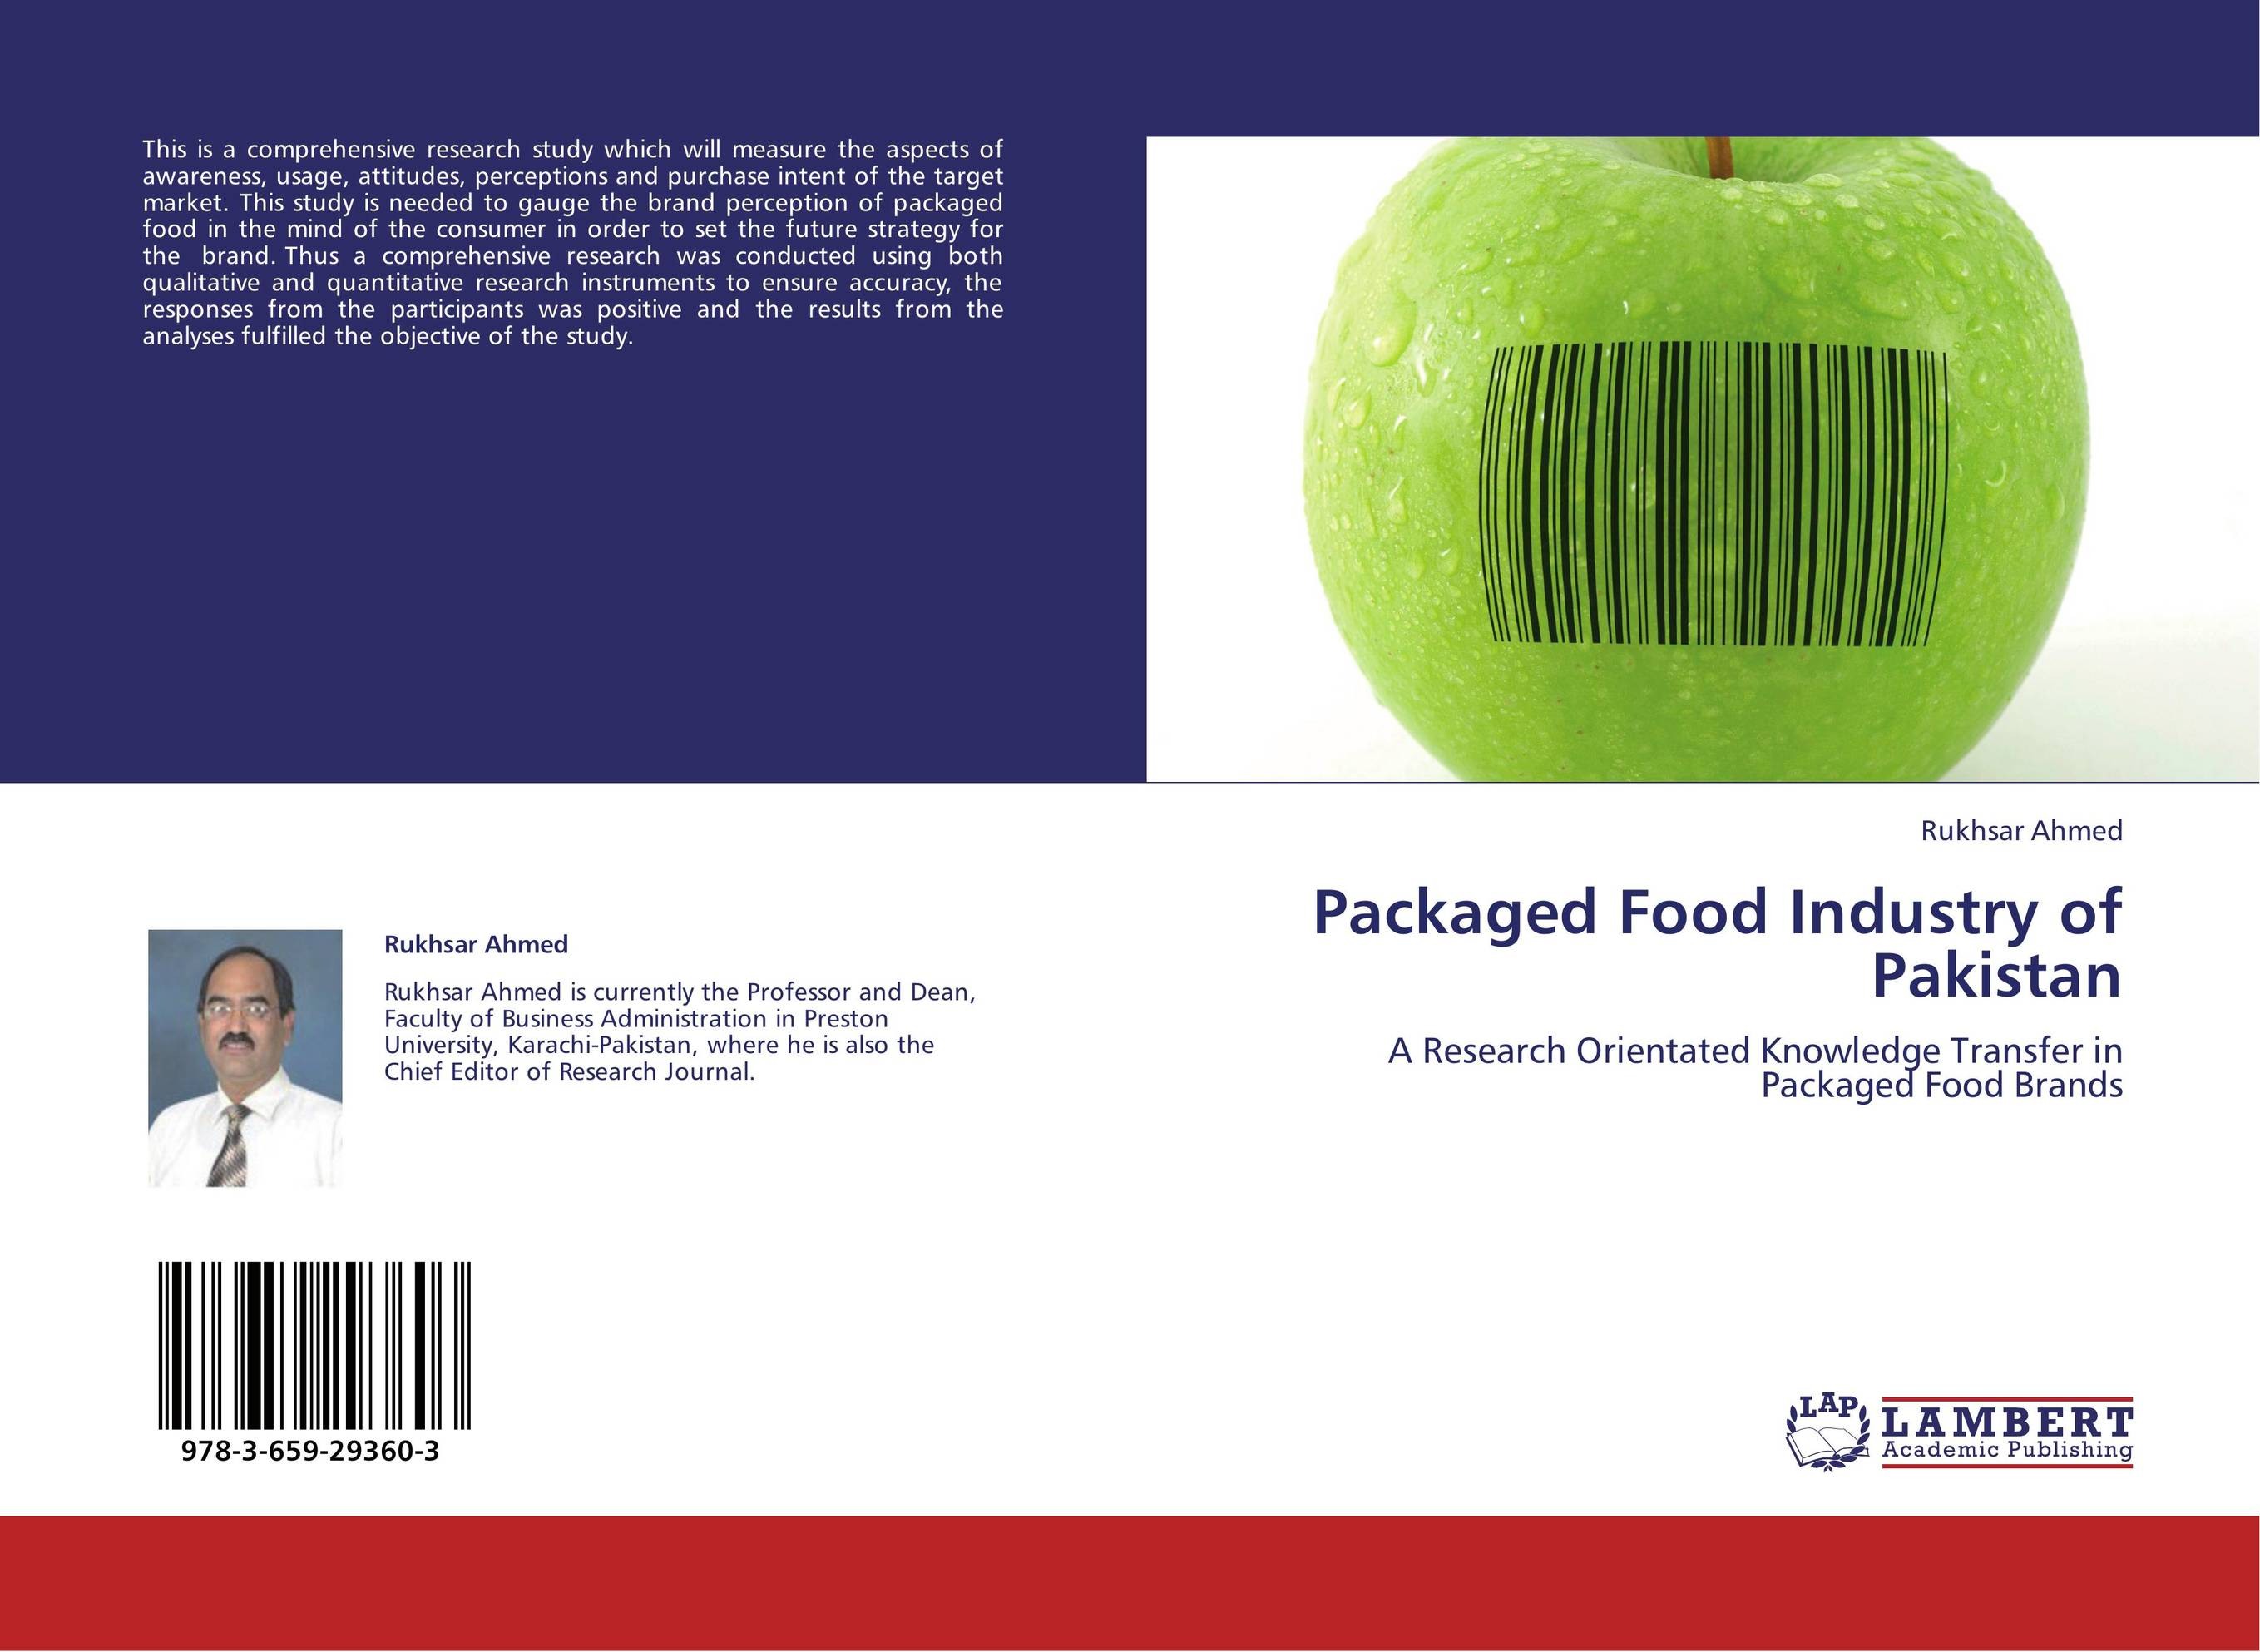 """packaged food industry analysis Marketresearchbiz, in its upcoming report titled, """"global gluten-free packaged food market trends, applications, analysis, growth, and forecast to 2027"""", offers in-depth insights, revenue details, and other vital information regarding the global gluten-free packaged food market and the various trends, drivers, restraints, opportunities, and threats in the target market till 2027."""